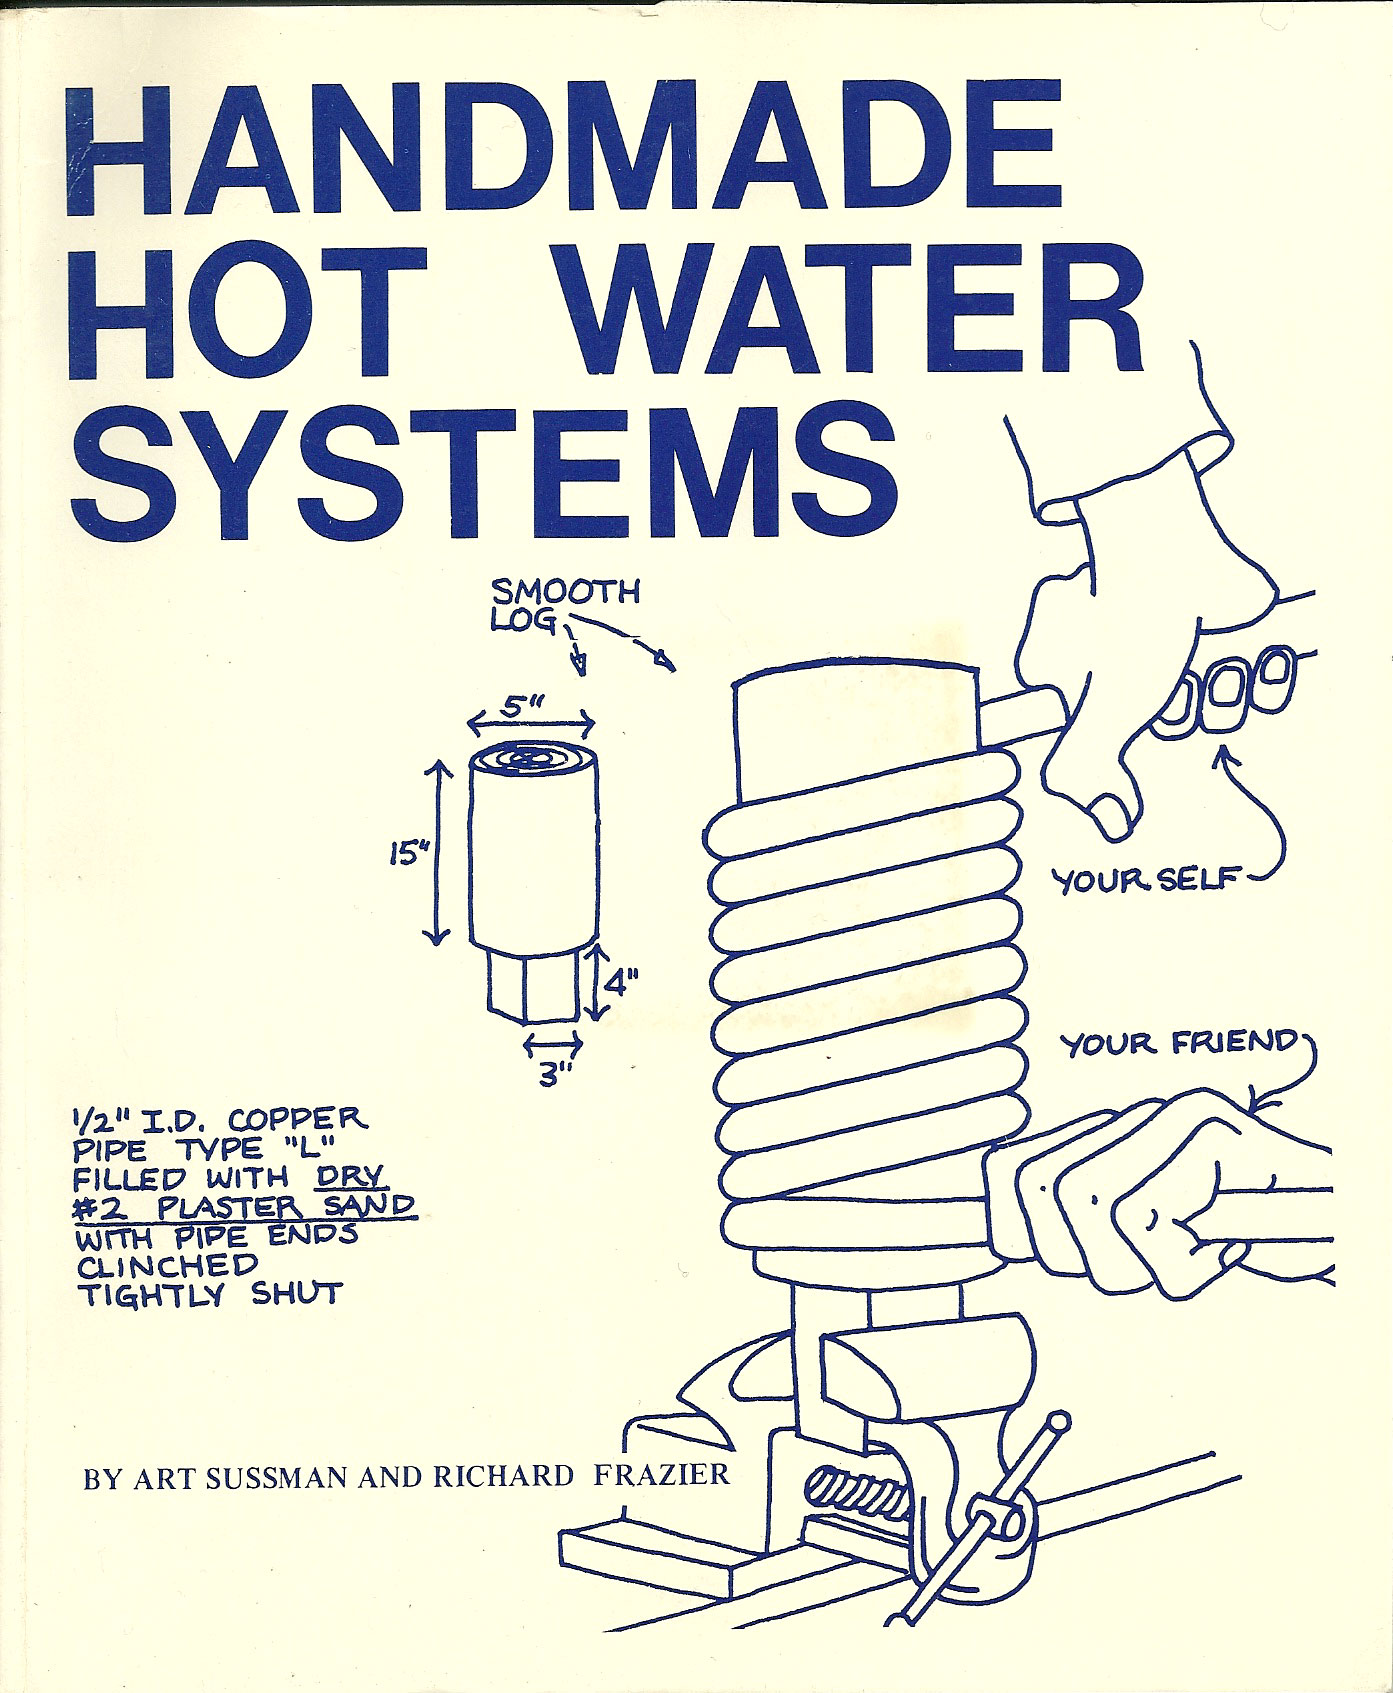 handmade hot water systems cover image